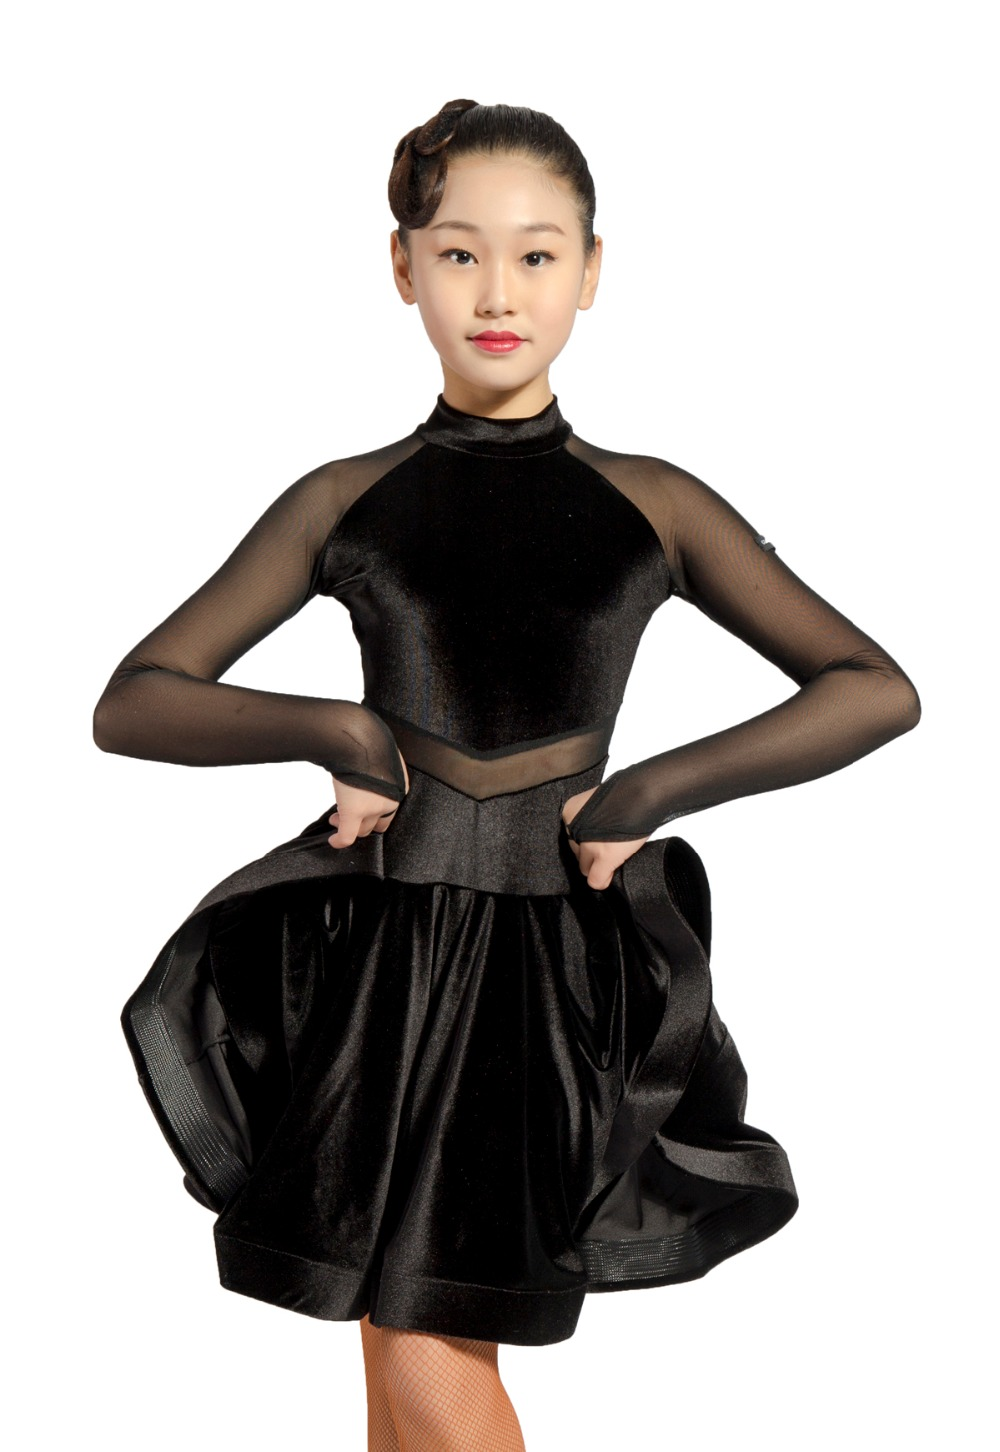 GD3102 kid latin ballroom party dance professionnel net fil et velours épissage conception performance robe pour fille - 2